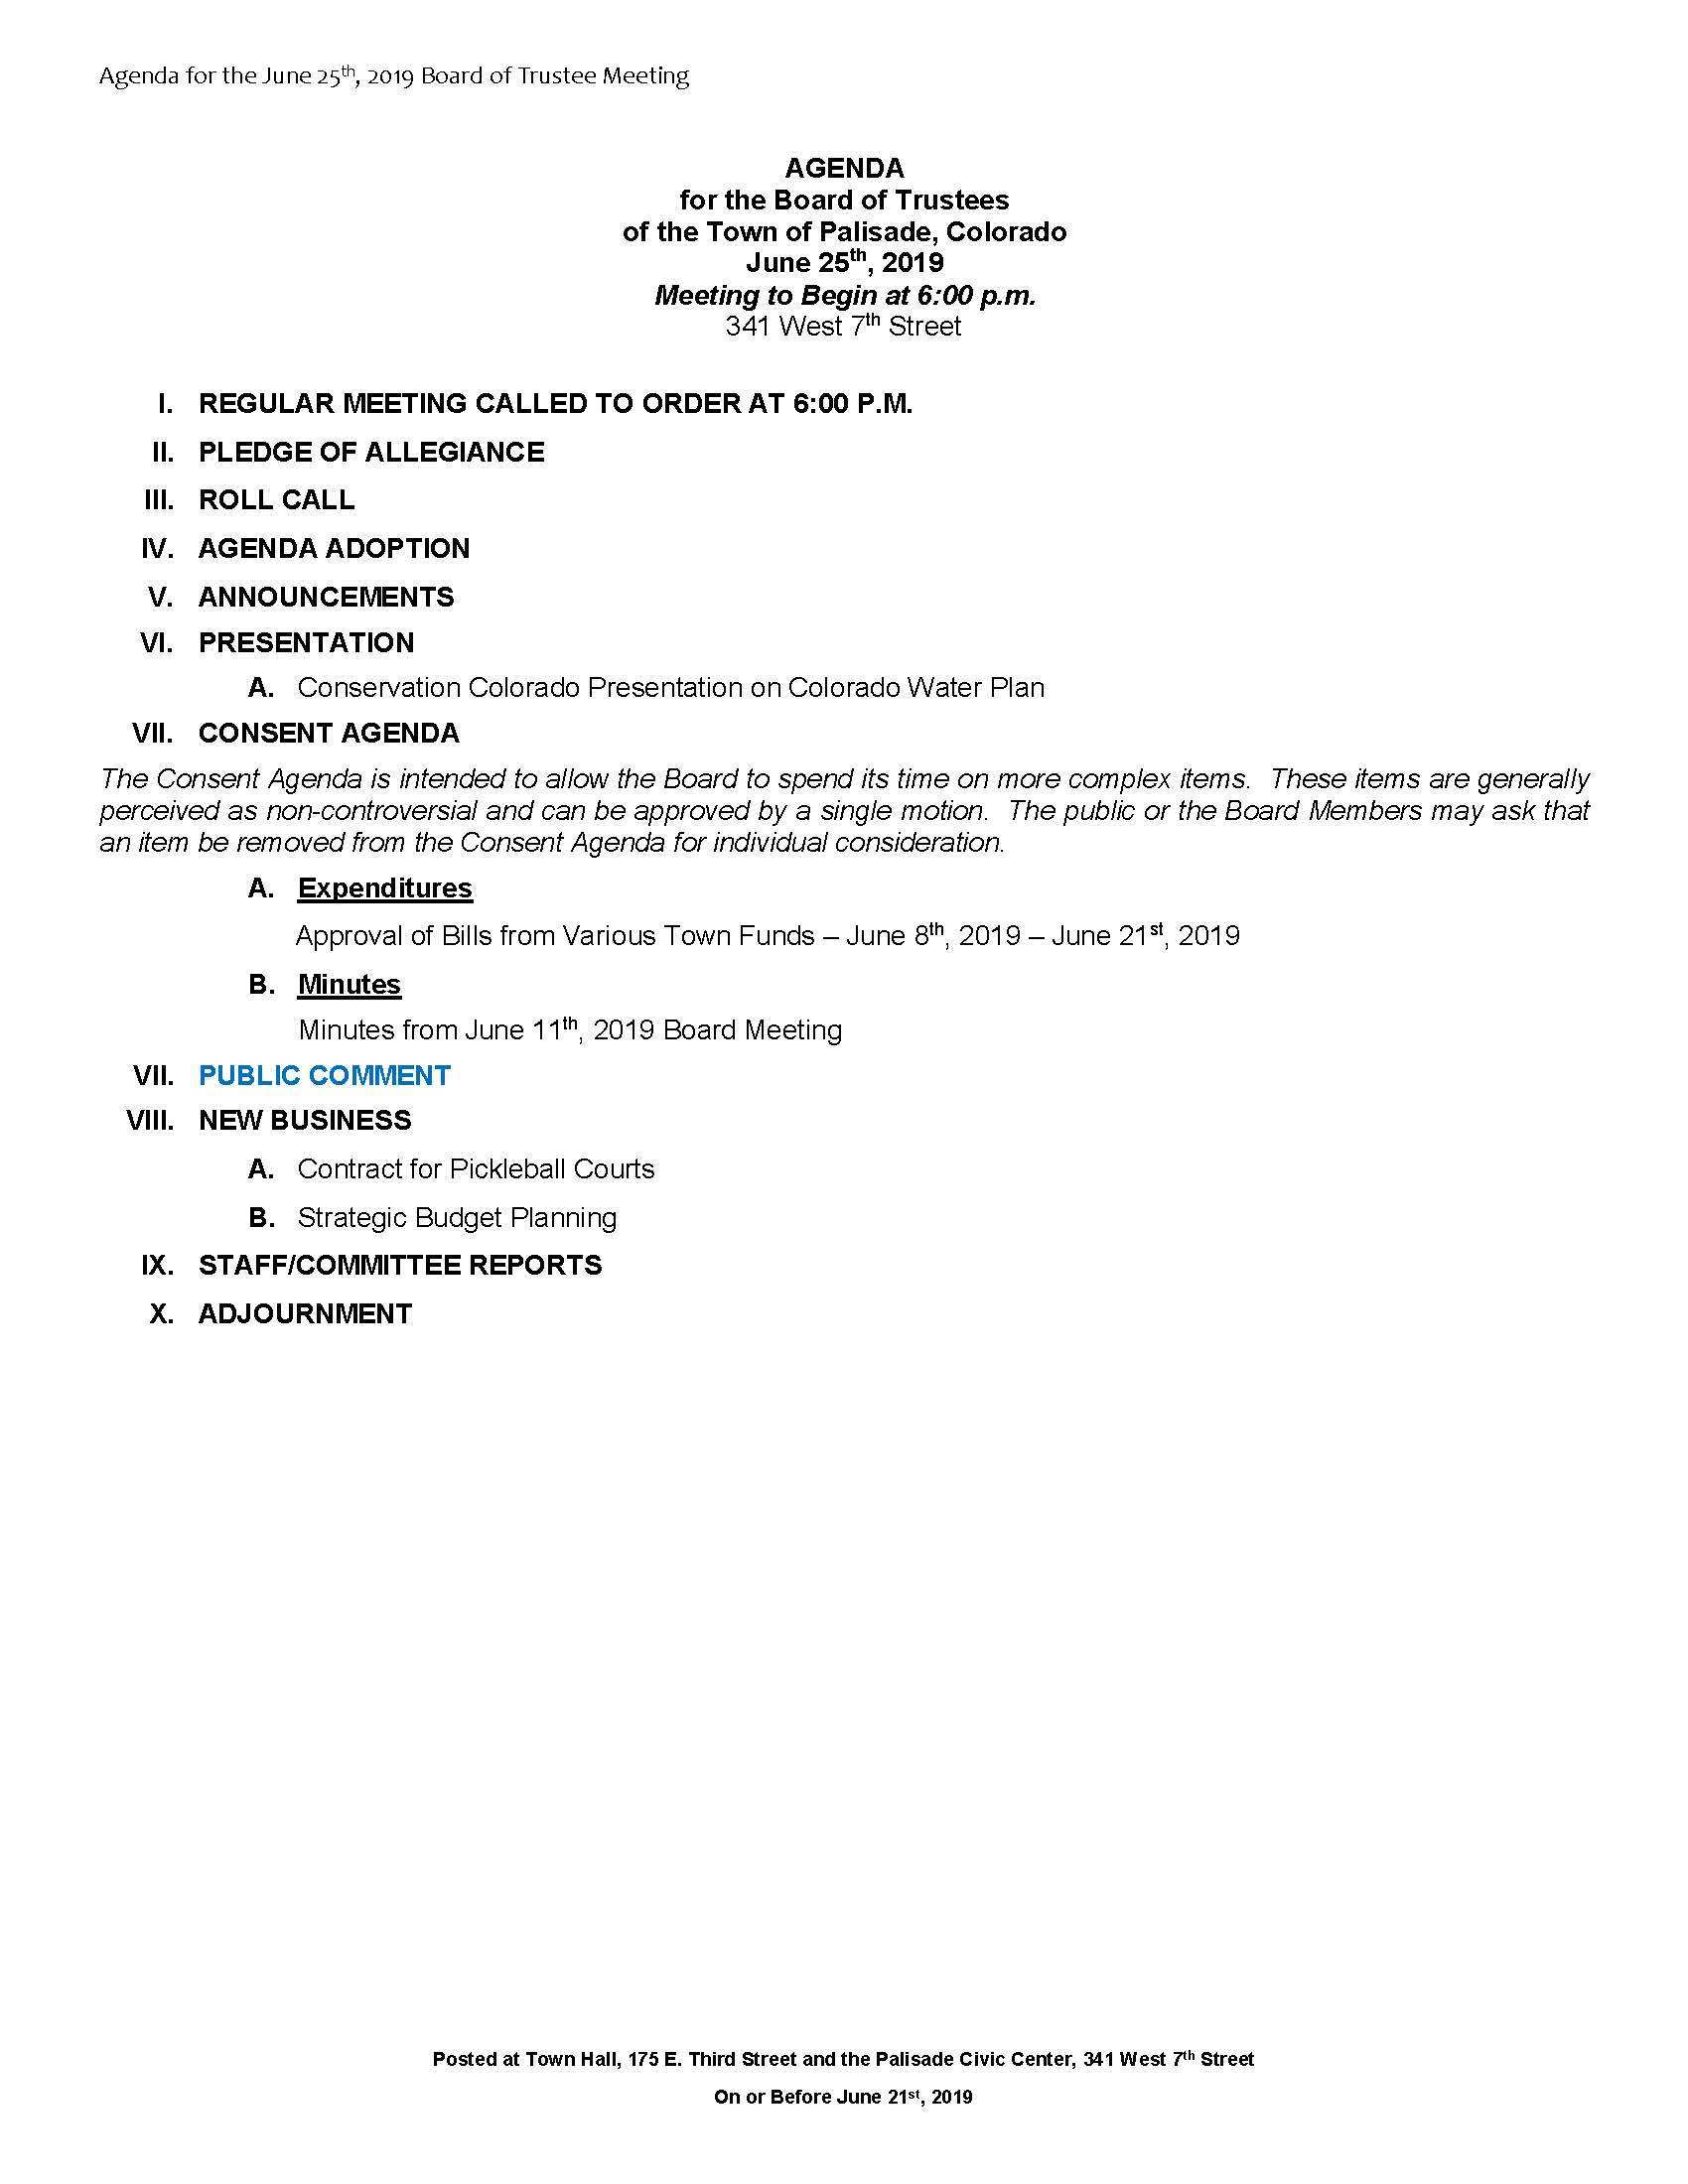 June 25th 2019 Board Meeting Agenda